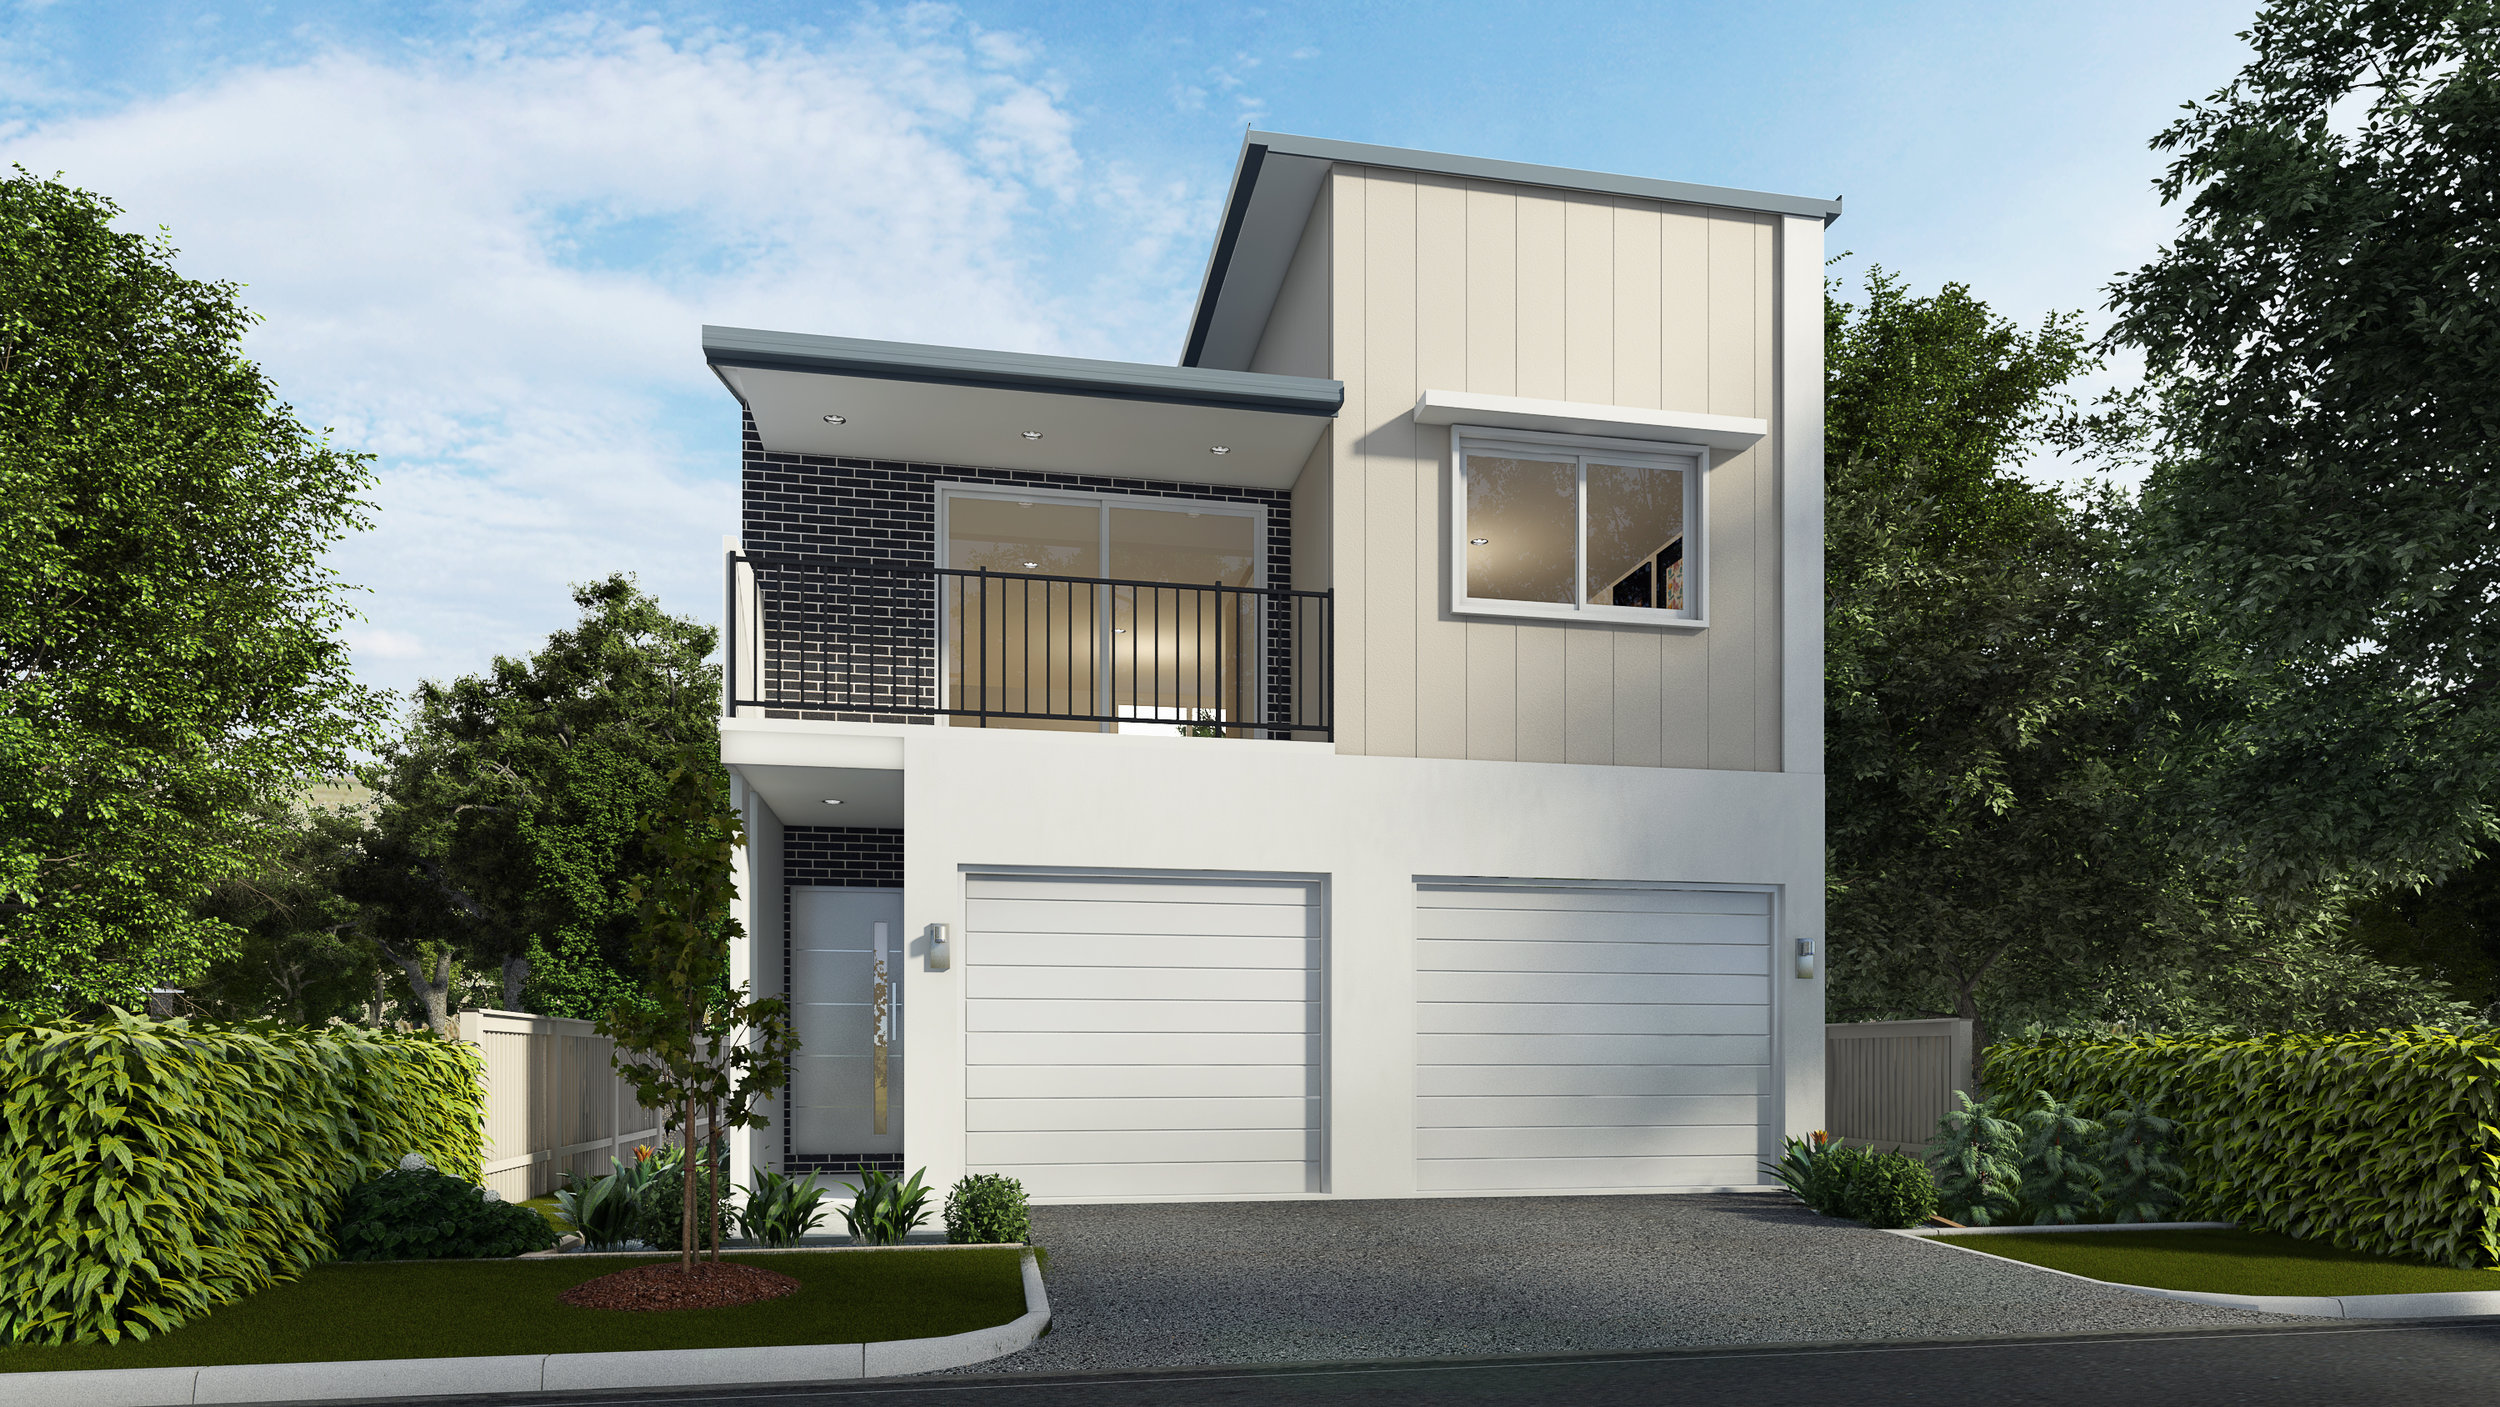 The Parkview - Unit A: 3 Bed | 2 Bath | 2 Car Tandem GarageUnit B: 1 Bed | 1 Bath | 1 Car Garage7.5m Laneway Lots